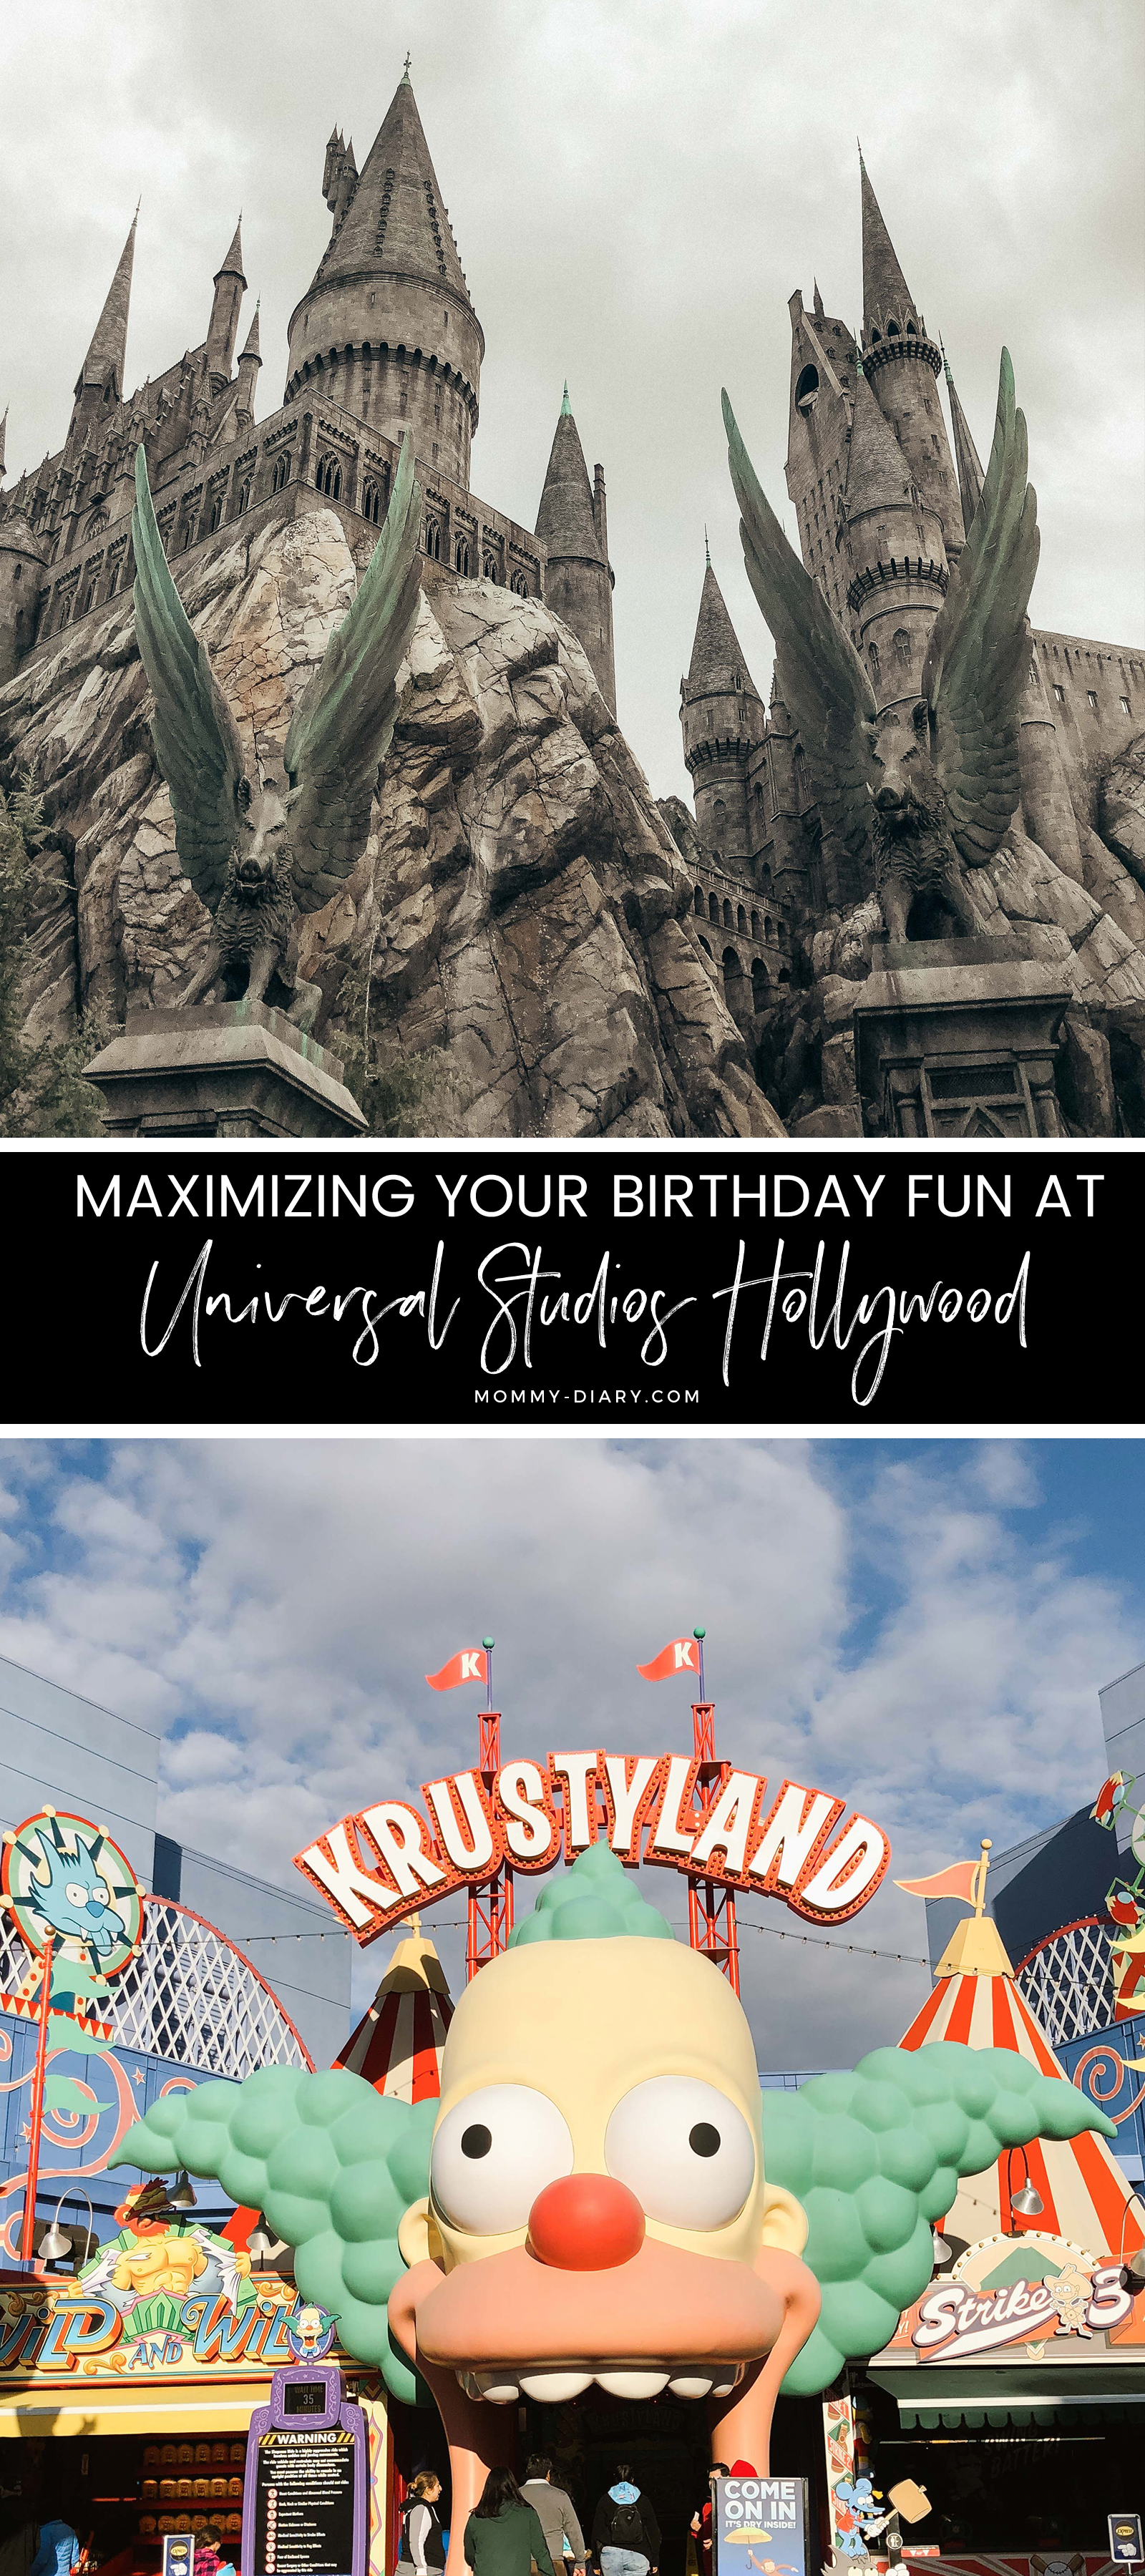 universal-studios-hollywood-pinterest